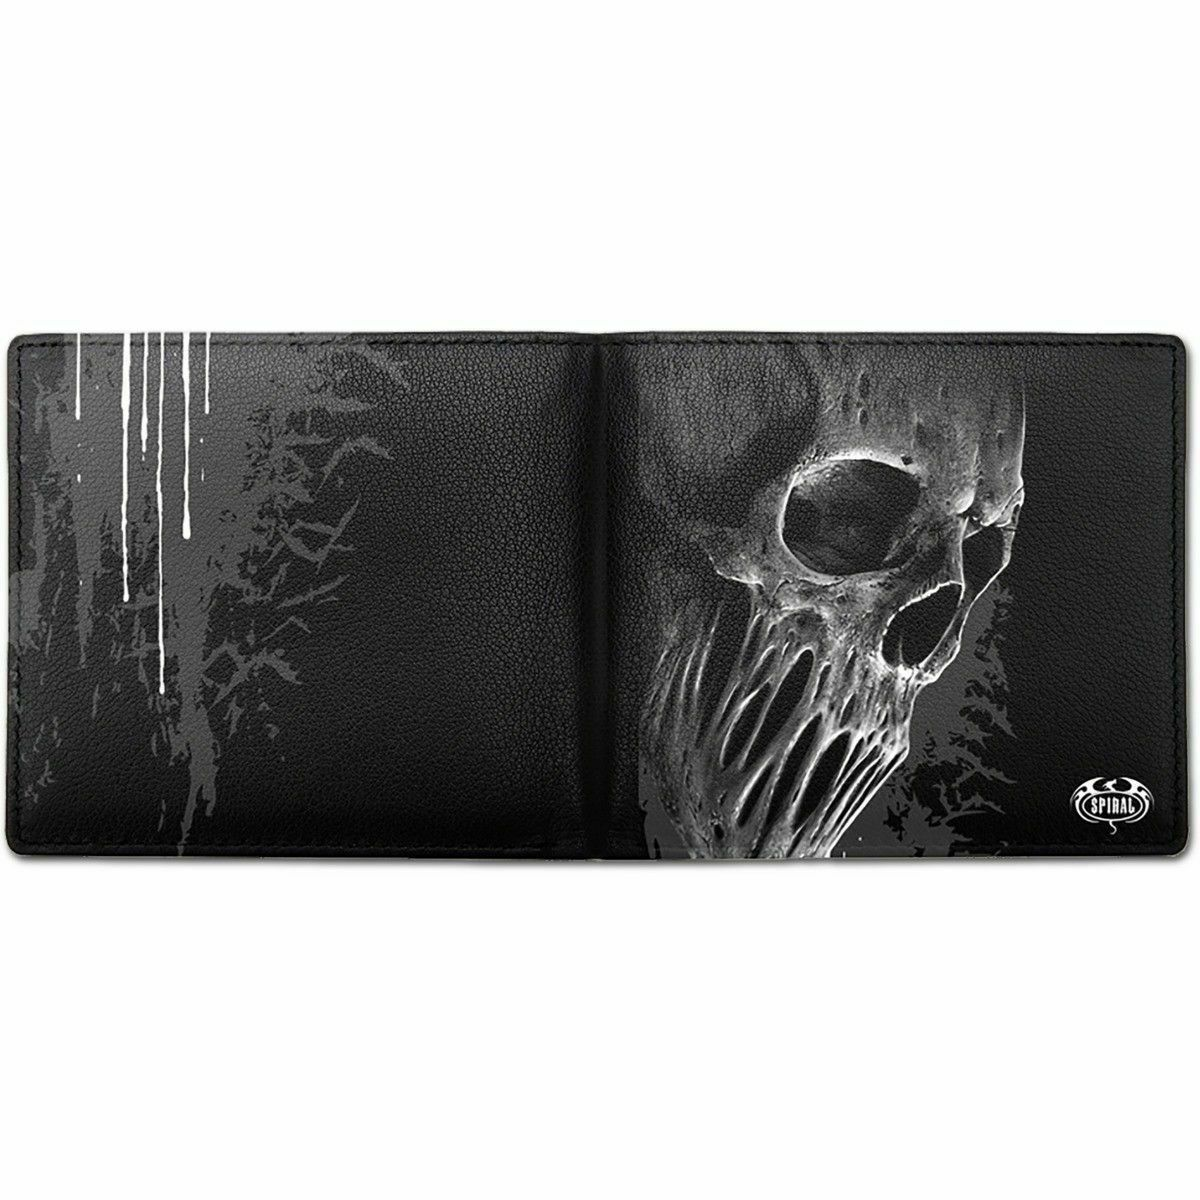 SPIRAL DIRECT BAT CURSE - BIFOLD WALLET WITH RFID BLOCKING AND GIFT BOX/Skull